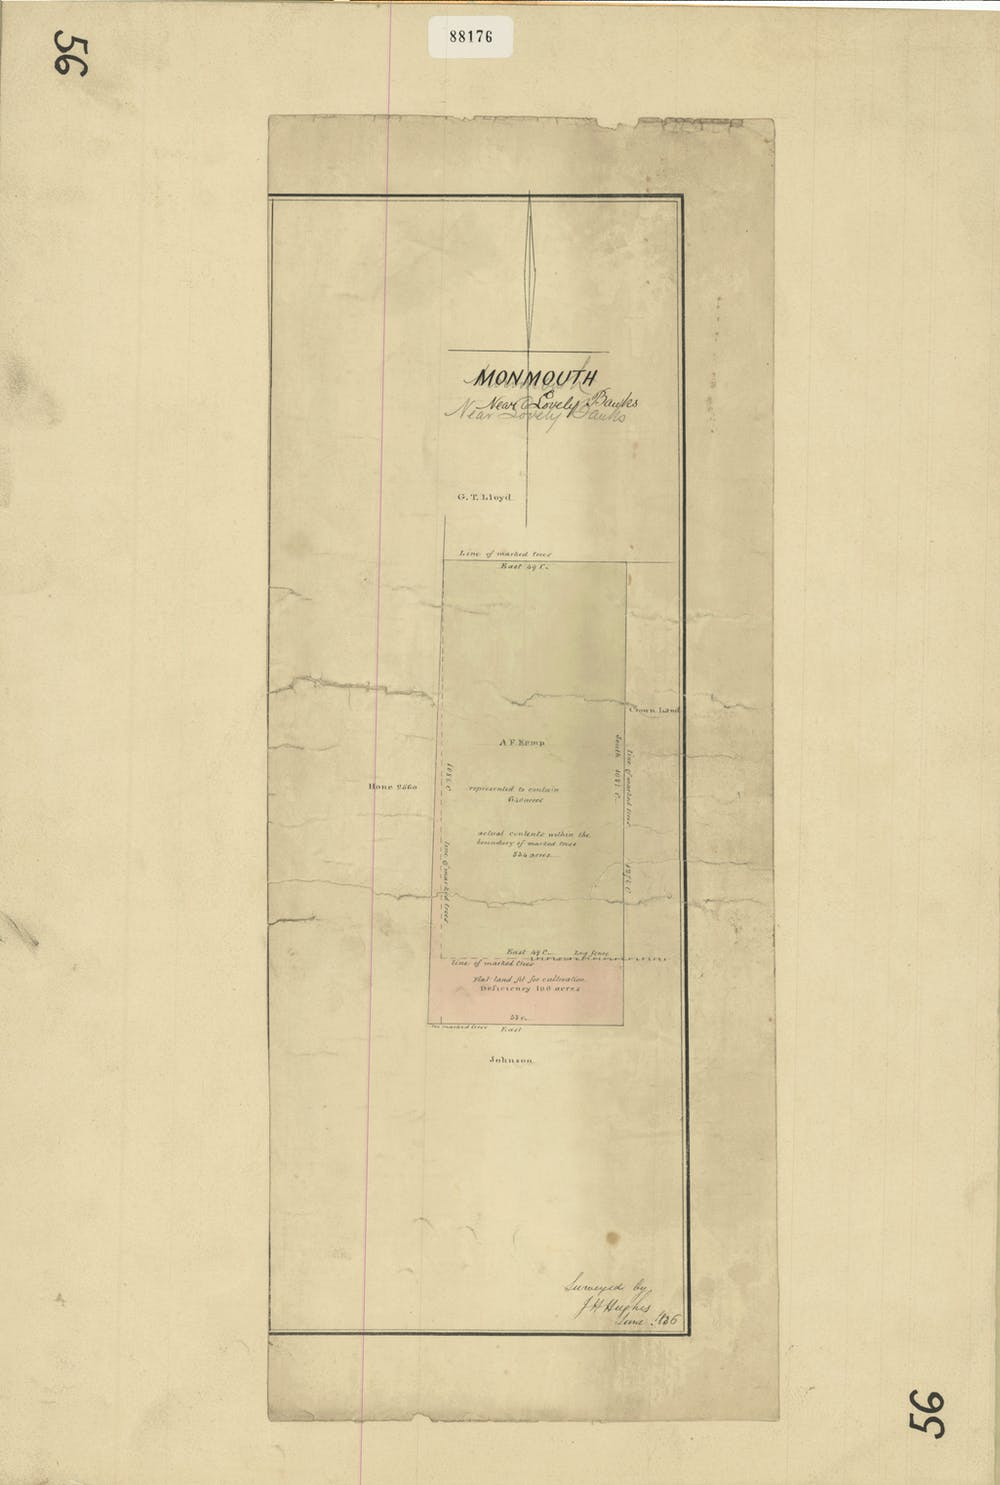 A sepia toned drawing of the Monmouth property